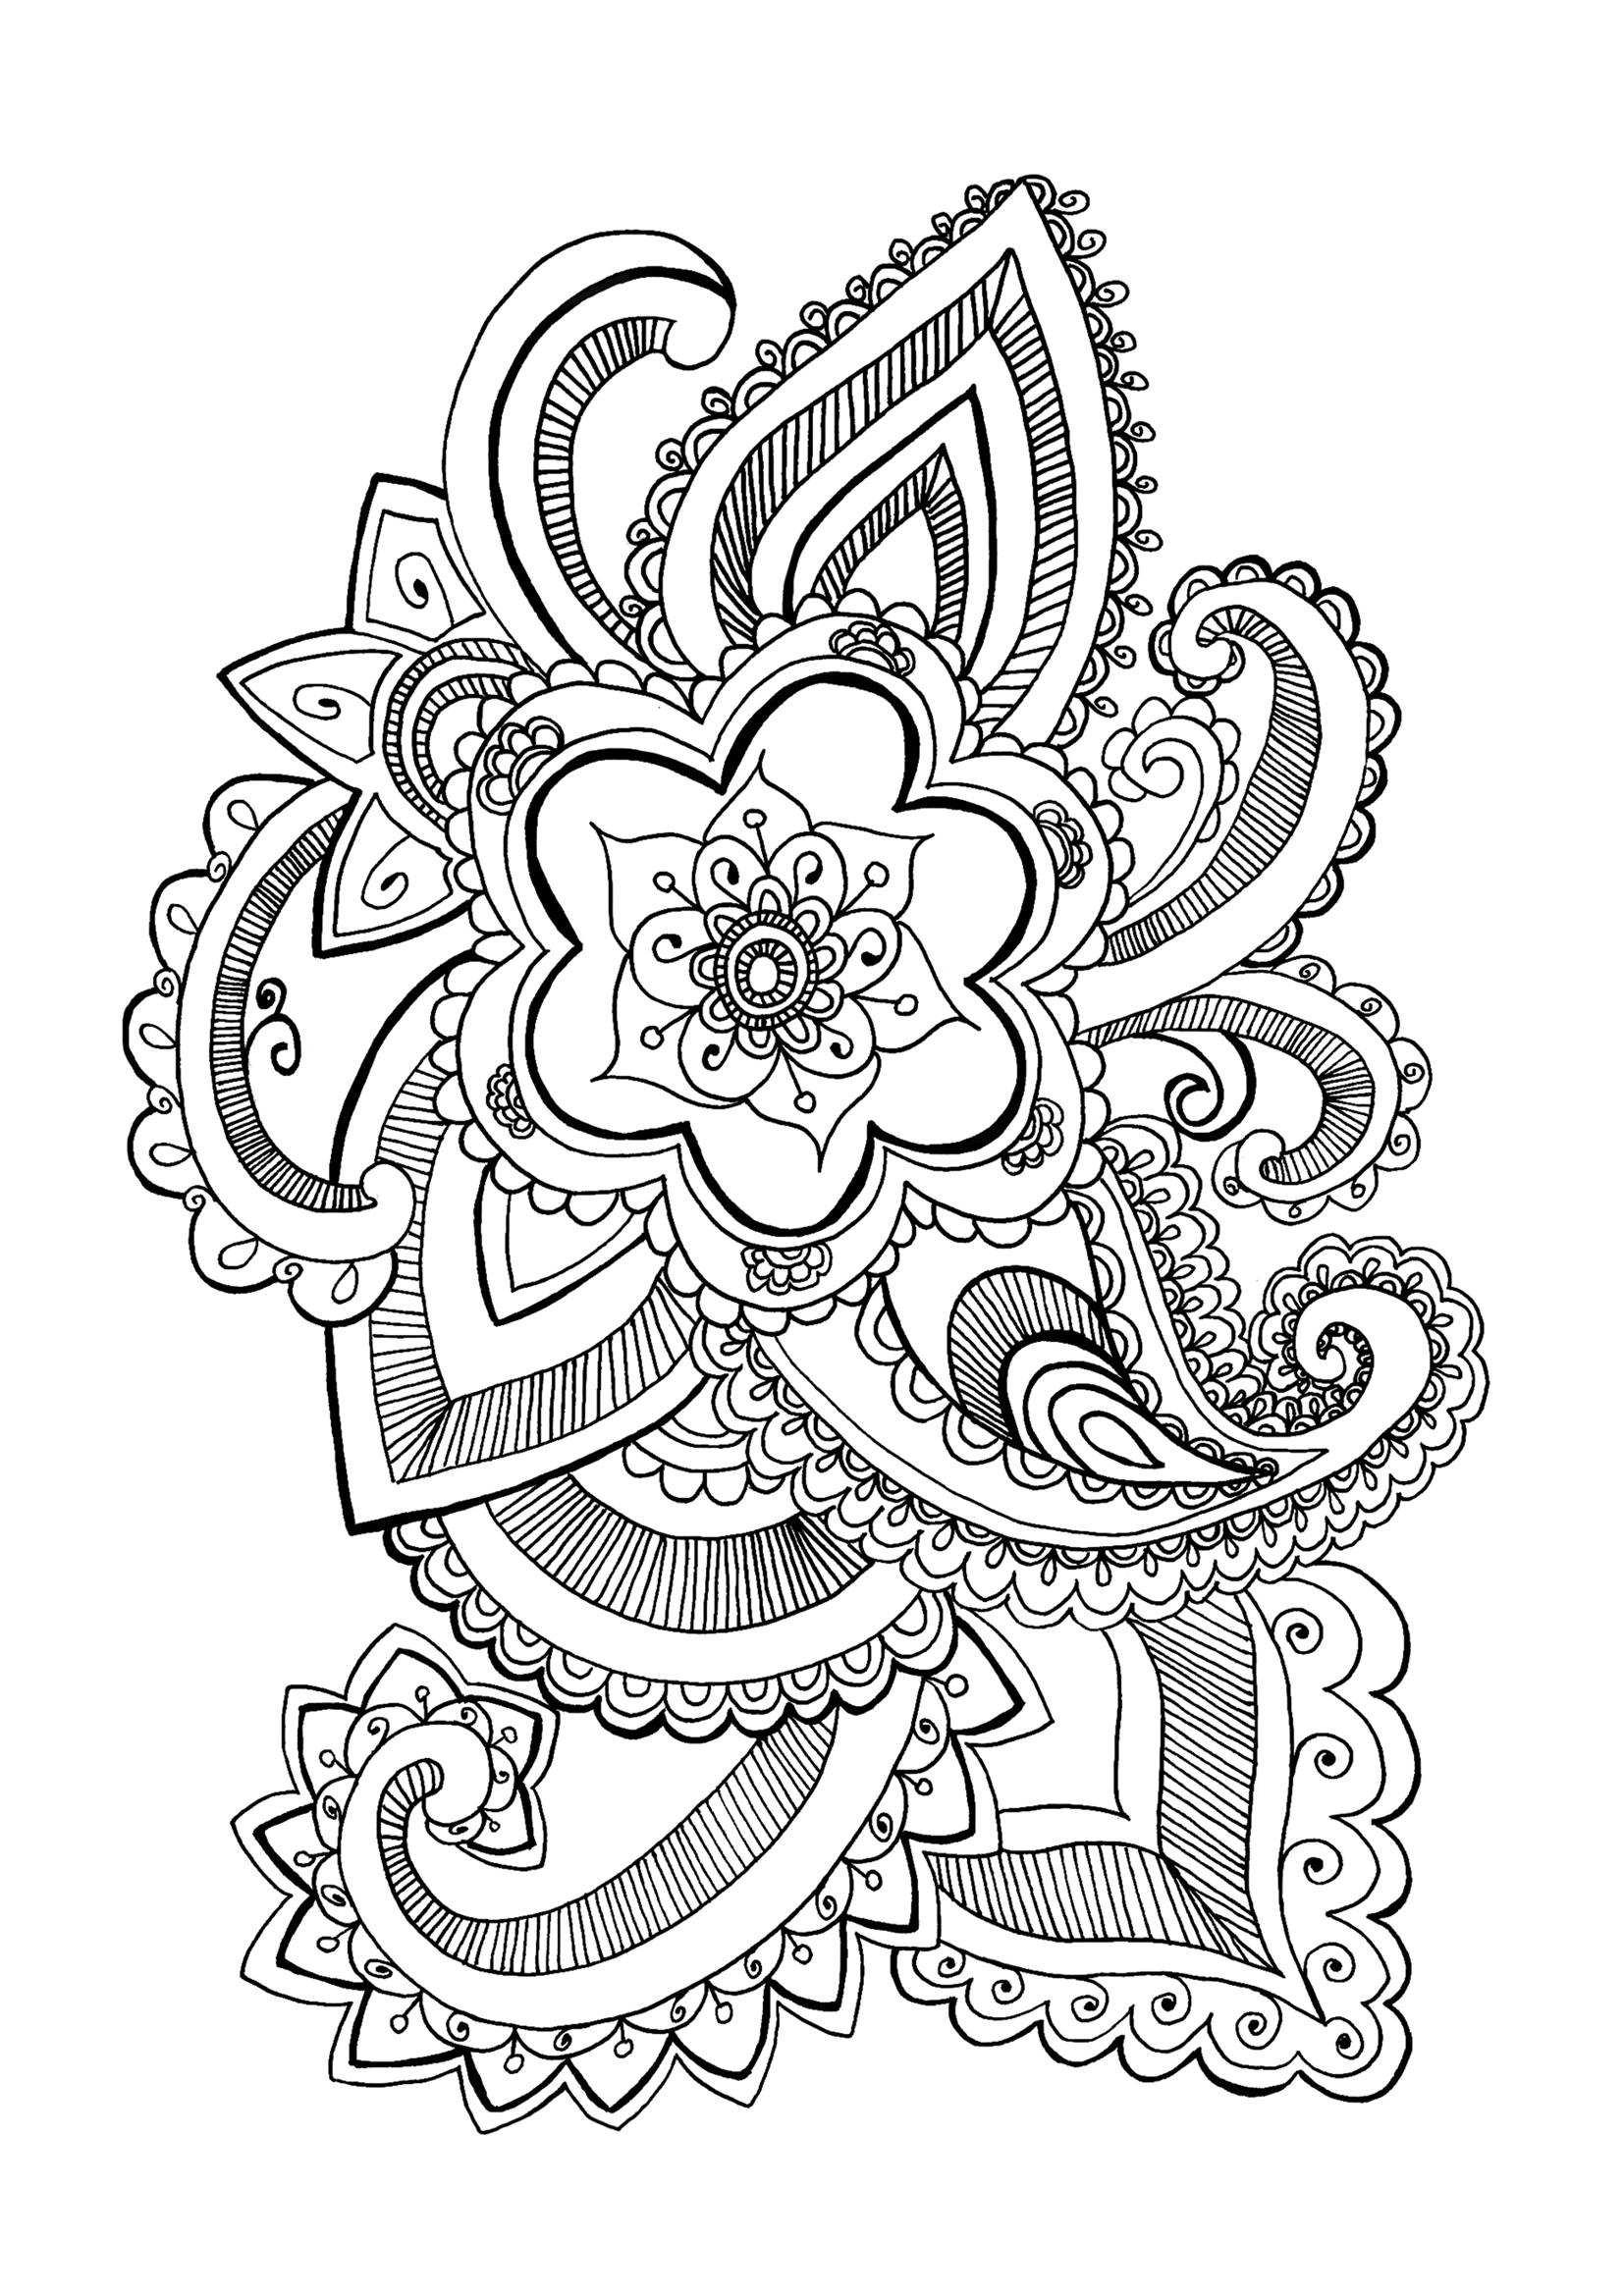 coloring pages for adults flowers get this realistic flowers coloring pages for adults 7dg40 flowers coloring for pages adults